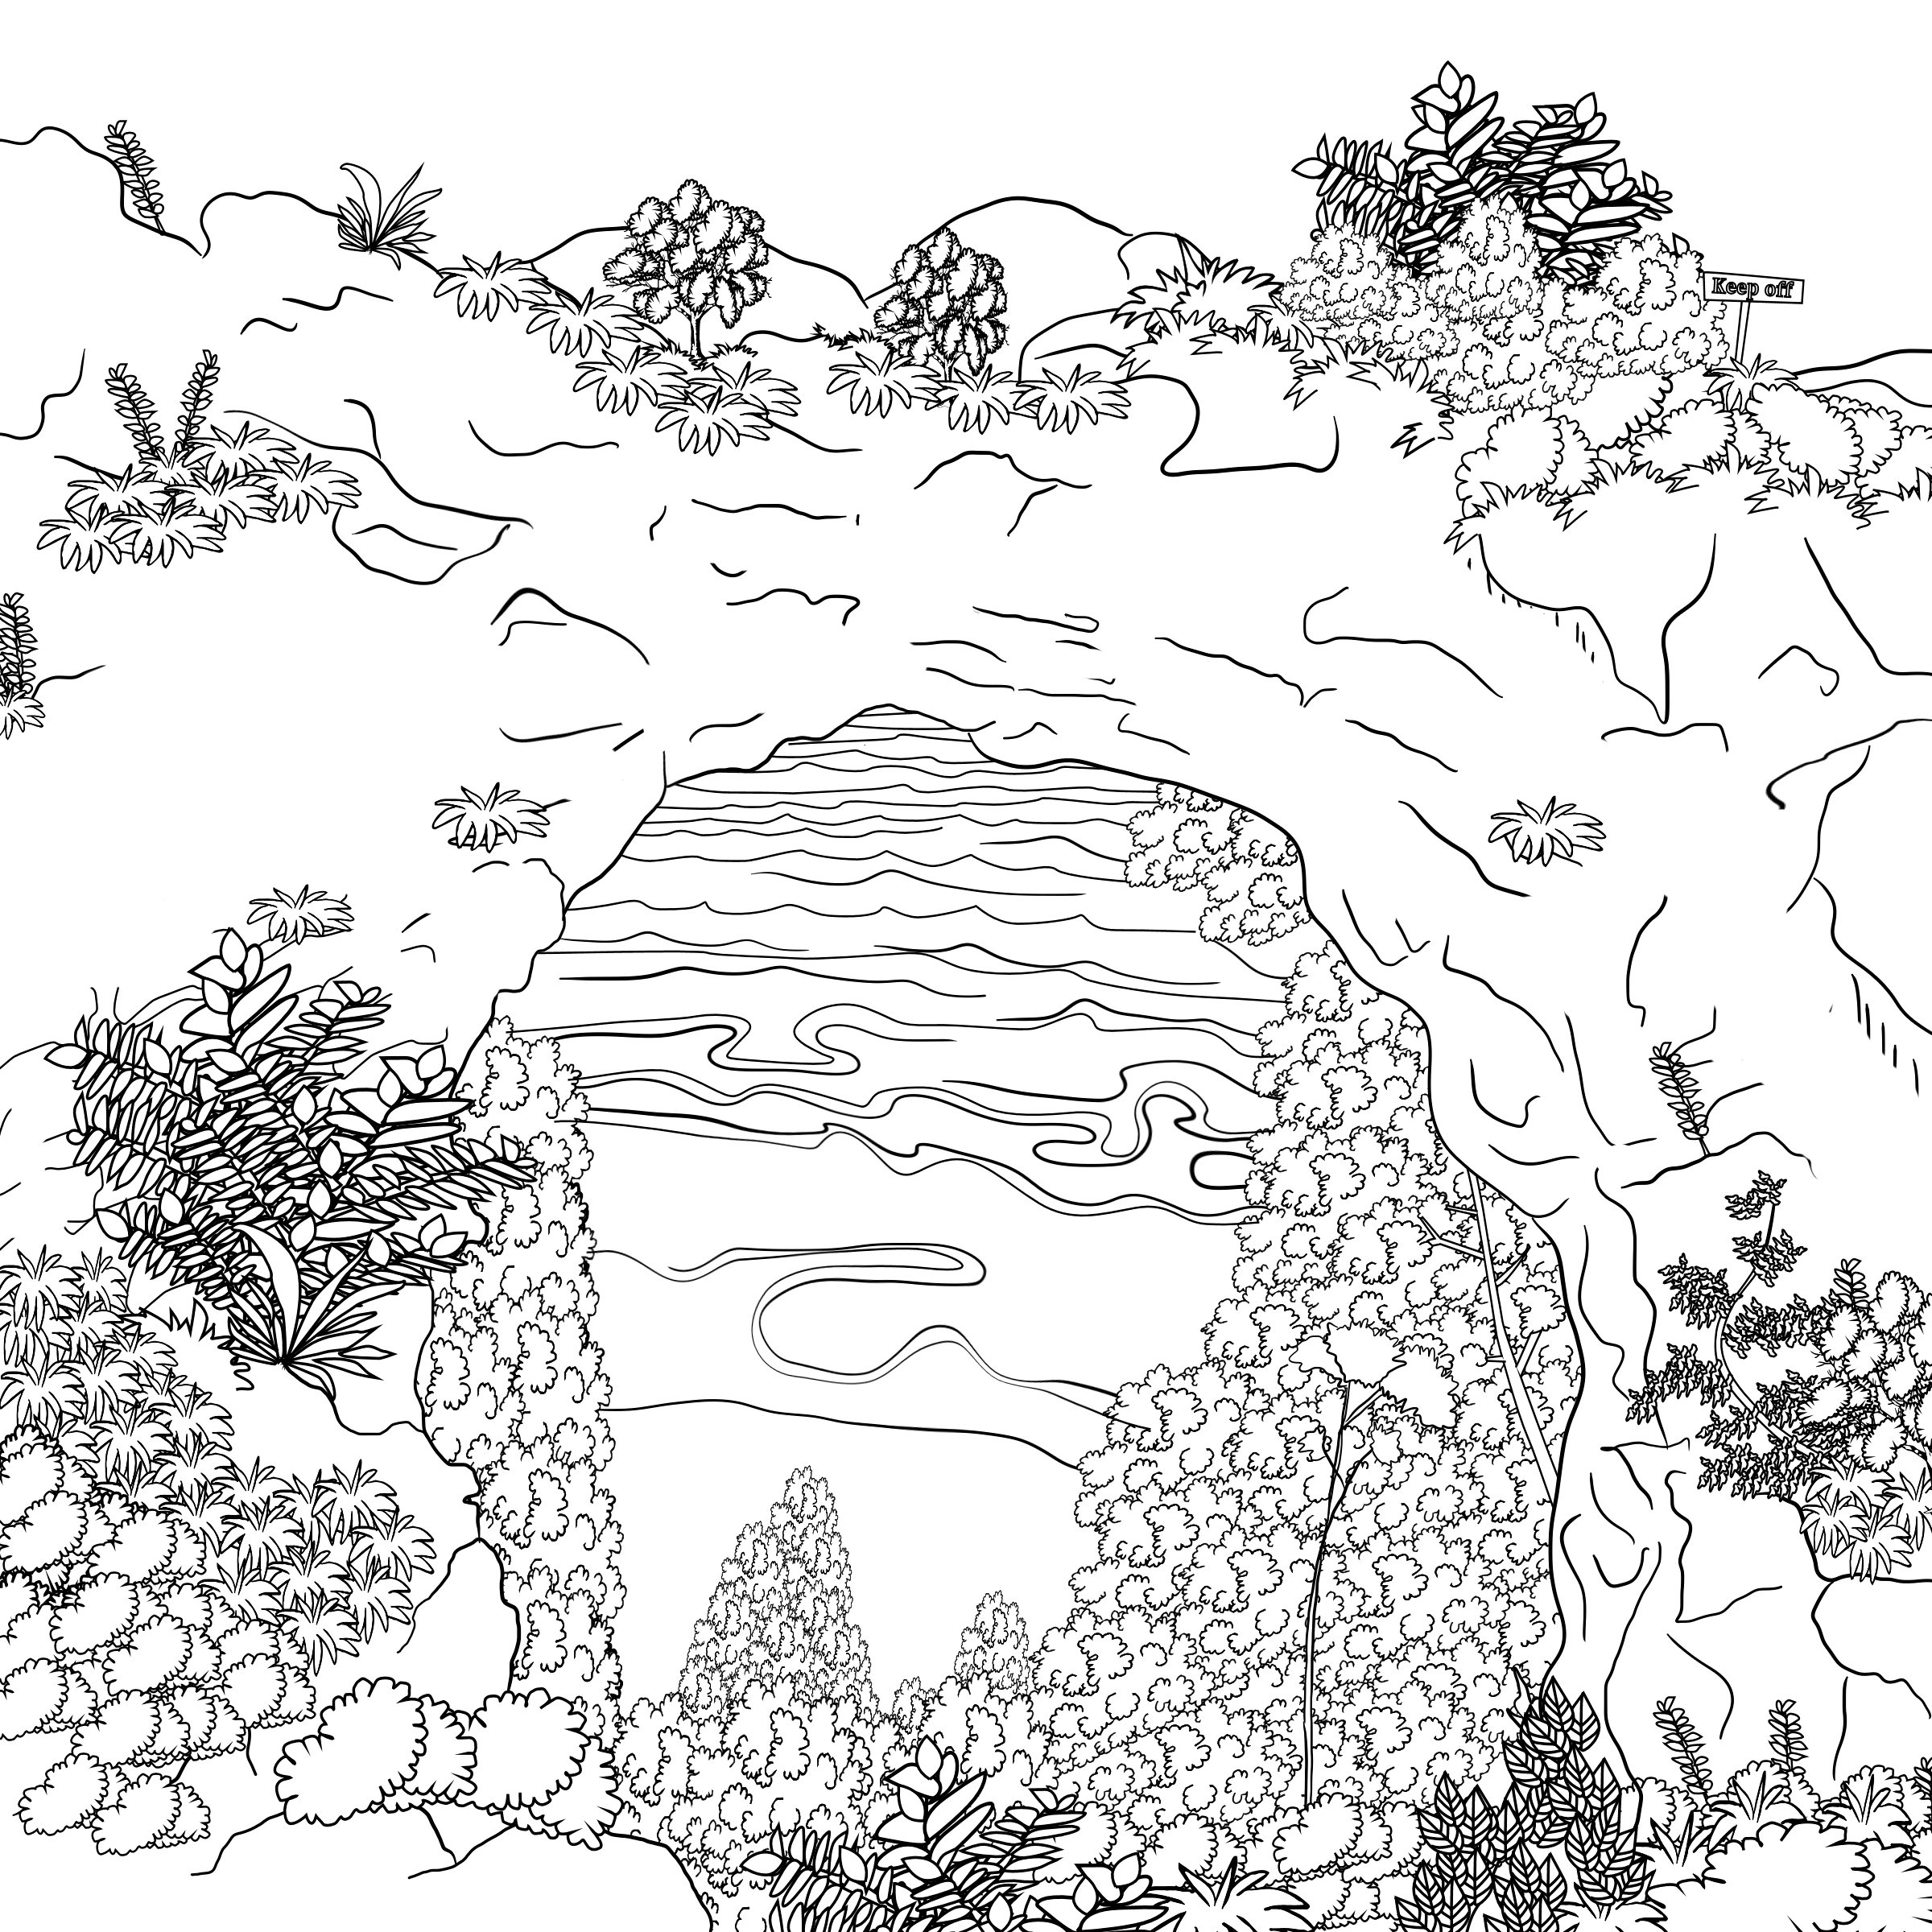 The enchanted forest colouring book nz - Grown Ups Colouring Book Illuminations The Mackinac Island Coloring Book For Grown Ups Kristen M